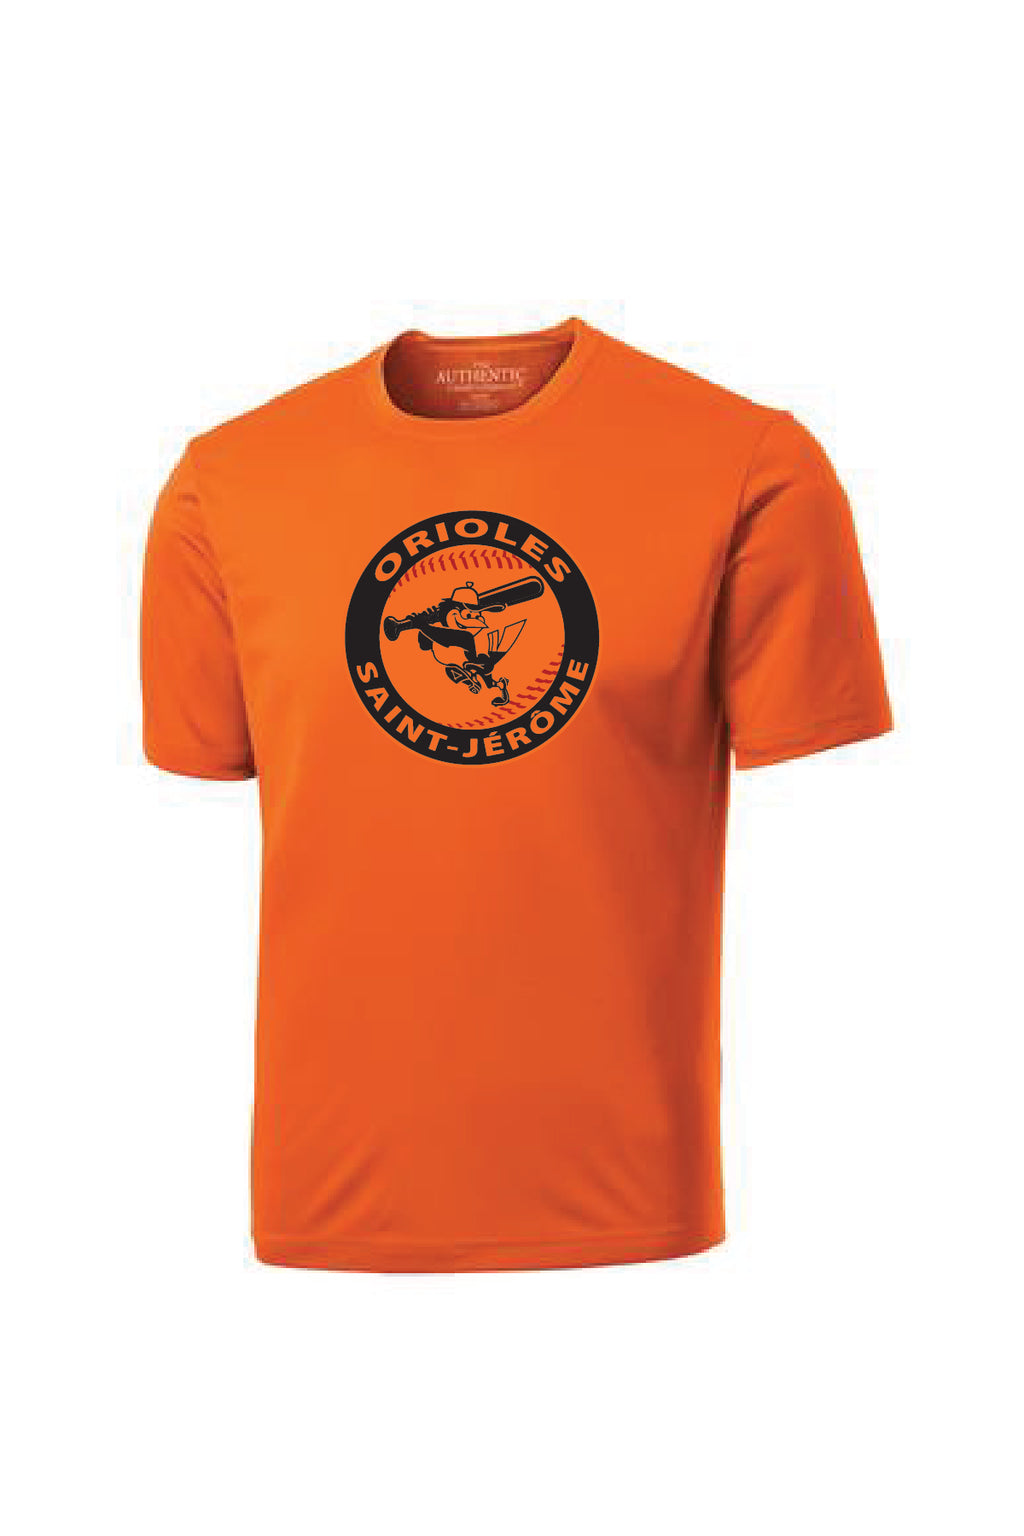 T-shirt Orange sublimation noir - Orioles